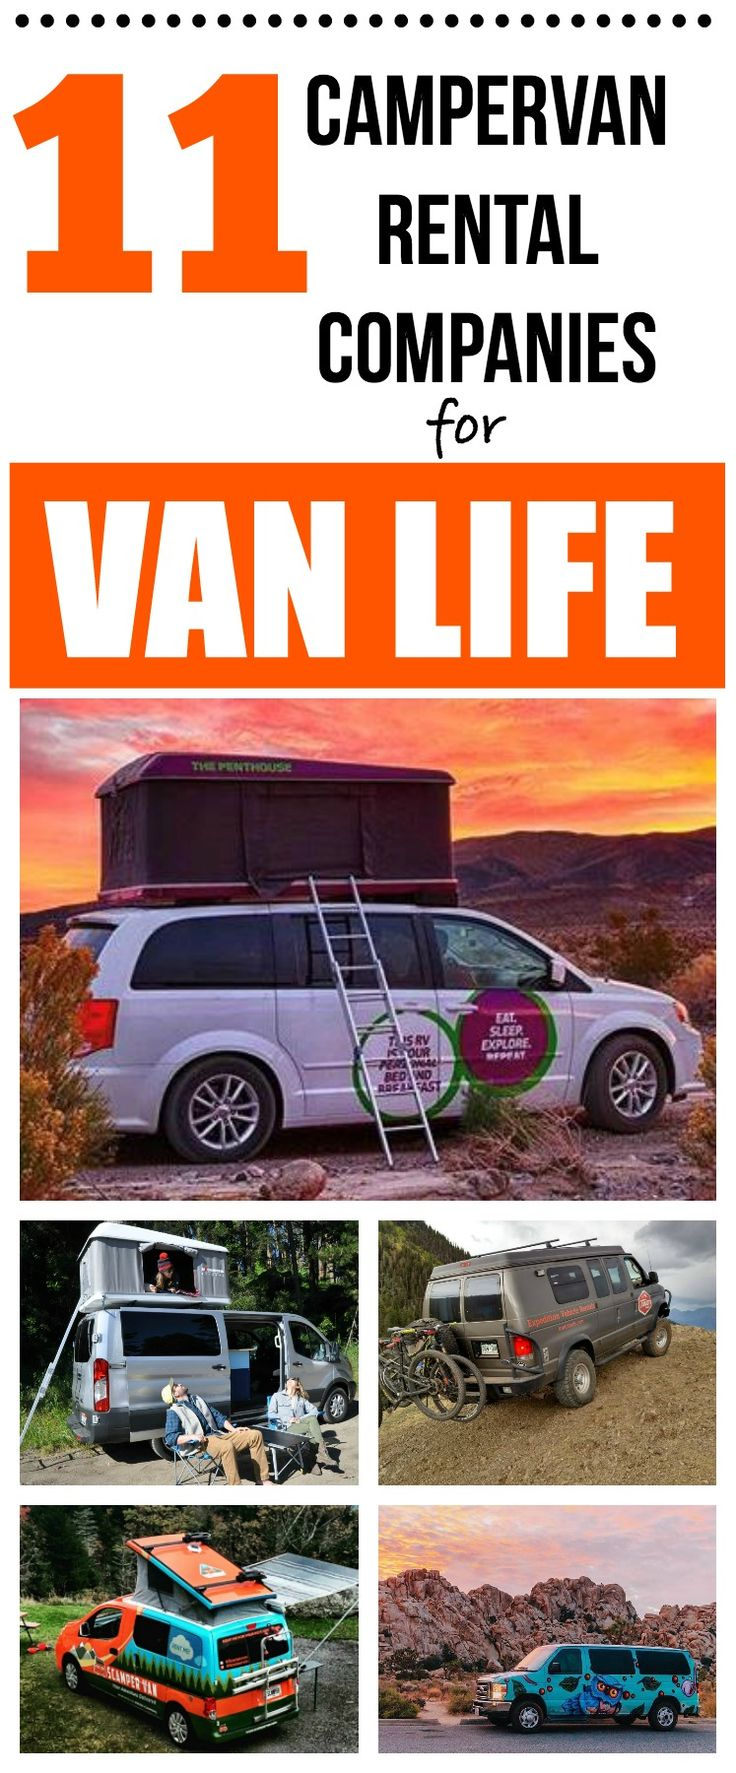 If you want to test out the van life but don't want to do a van conversion yet, check out these 11 campervan rental companies where you can take an amazing van out for a weekend adventure. #vanlife #vanconversion #campervan #campingvan via @thewaywardhome